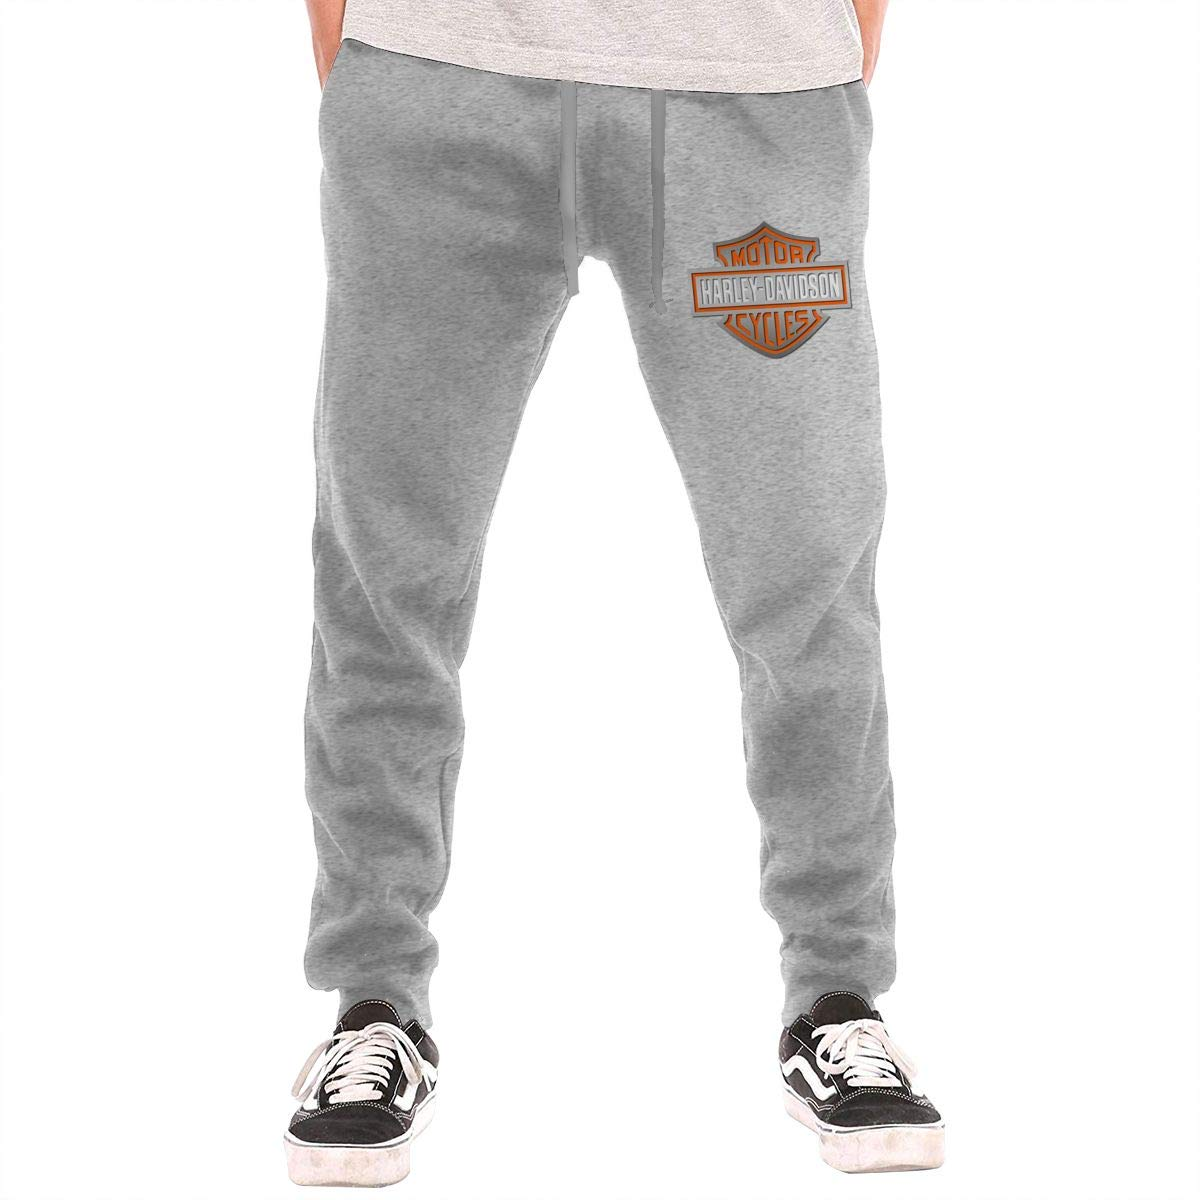 HoodCup Harley?Davidson Mens Sweatpants Gym Athletic Pants Sport Joggers Workout Sweat Pants